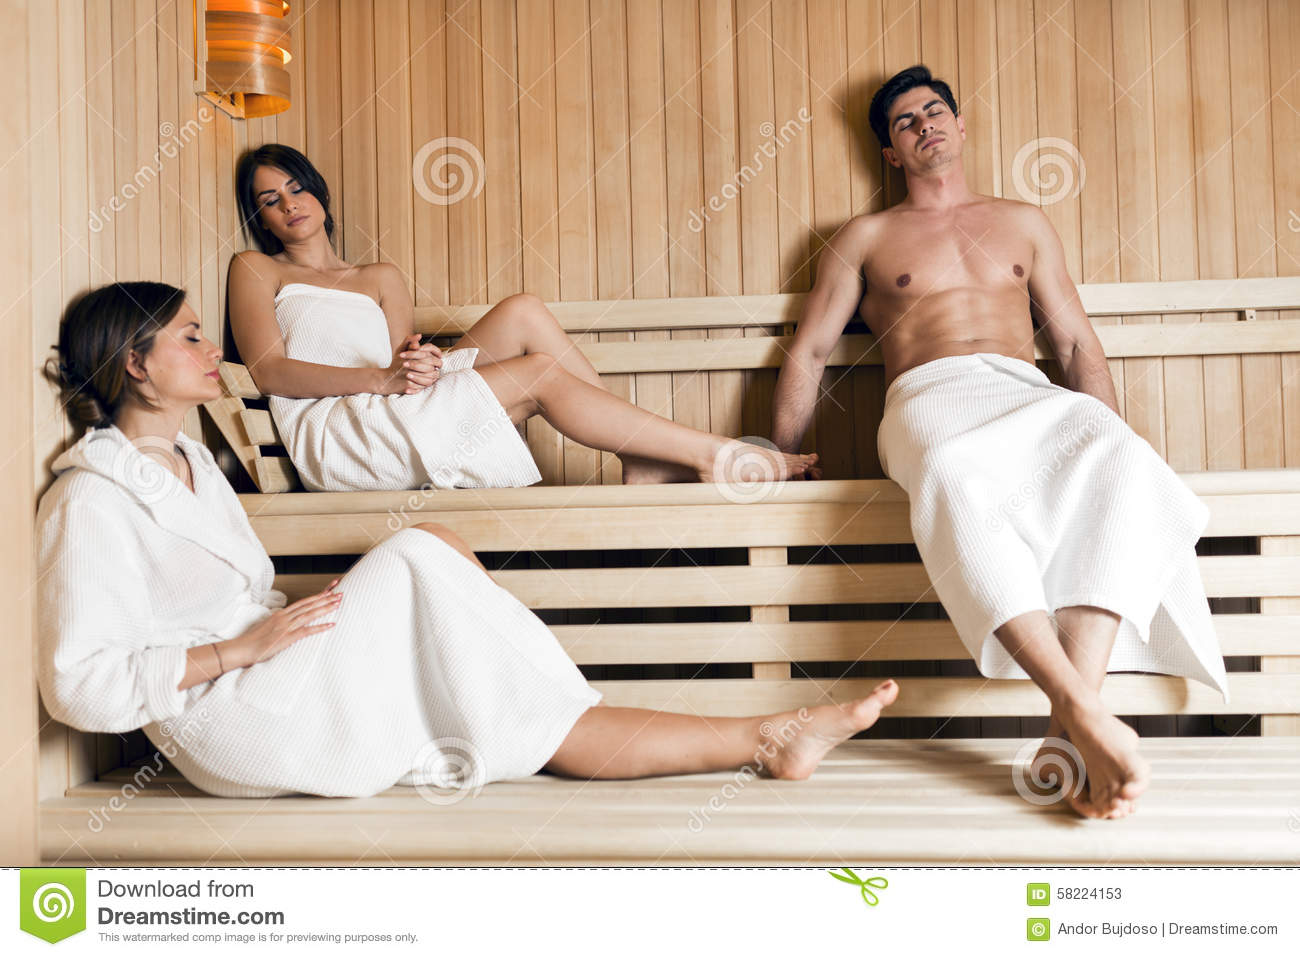 Bezaubernd Sauna Bilder Dekoration Von Group Of Young People Relaxing In A